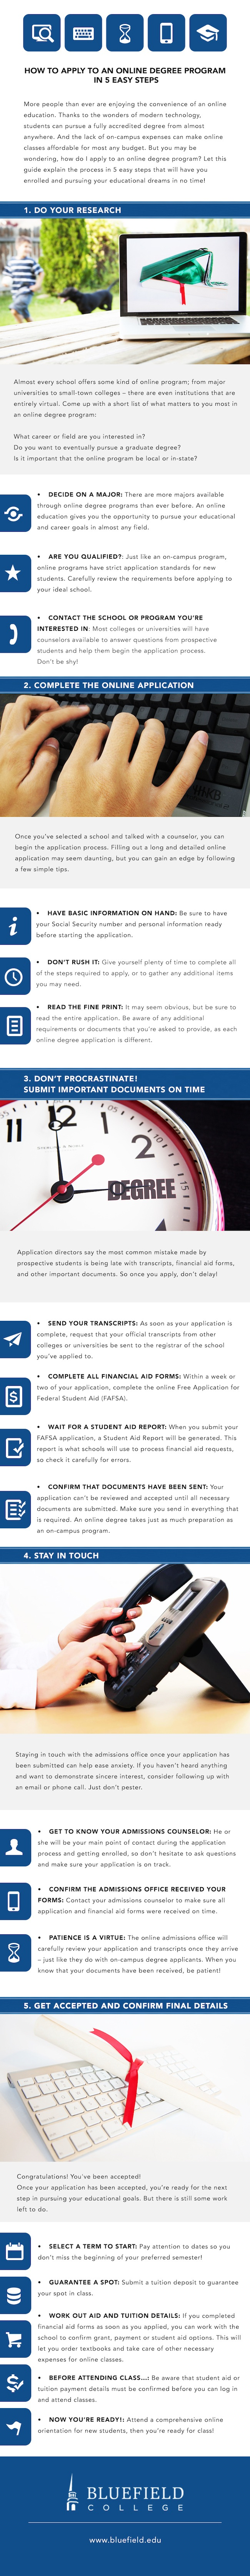 How to Apply to an Online Degree Program Infographic